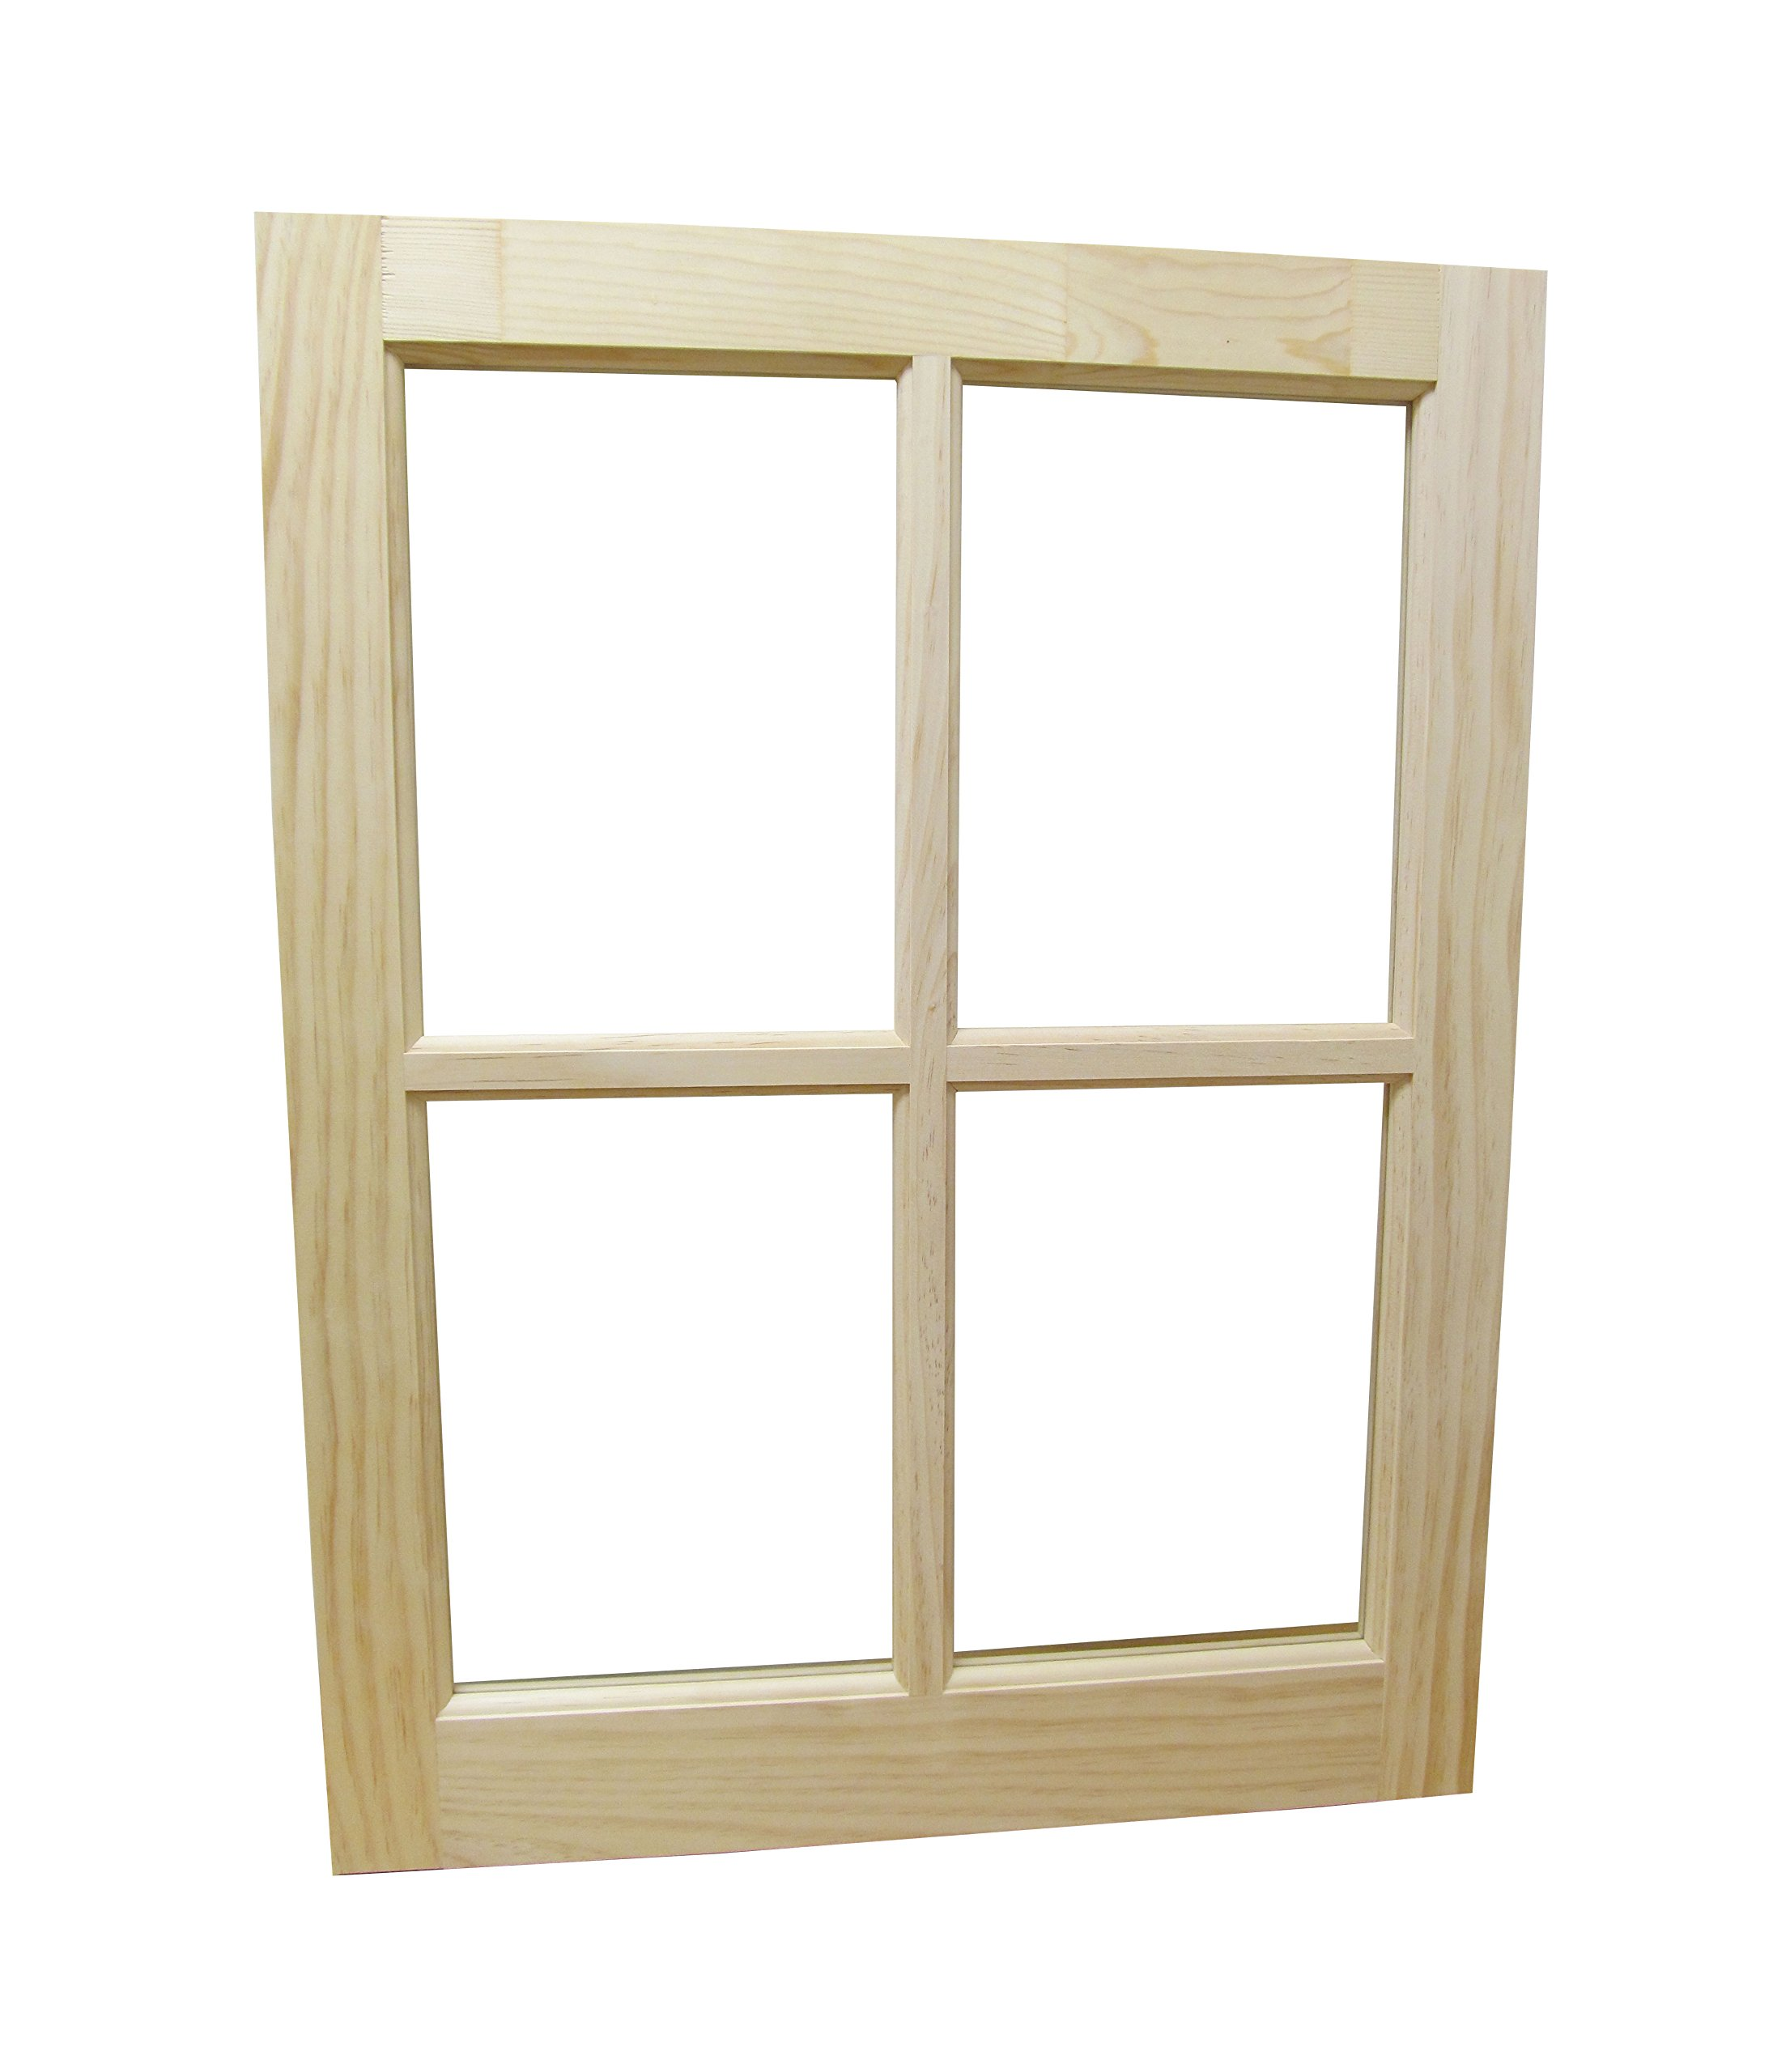 Wooded Barn Sash Window Traditional Style 22'' x 29''